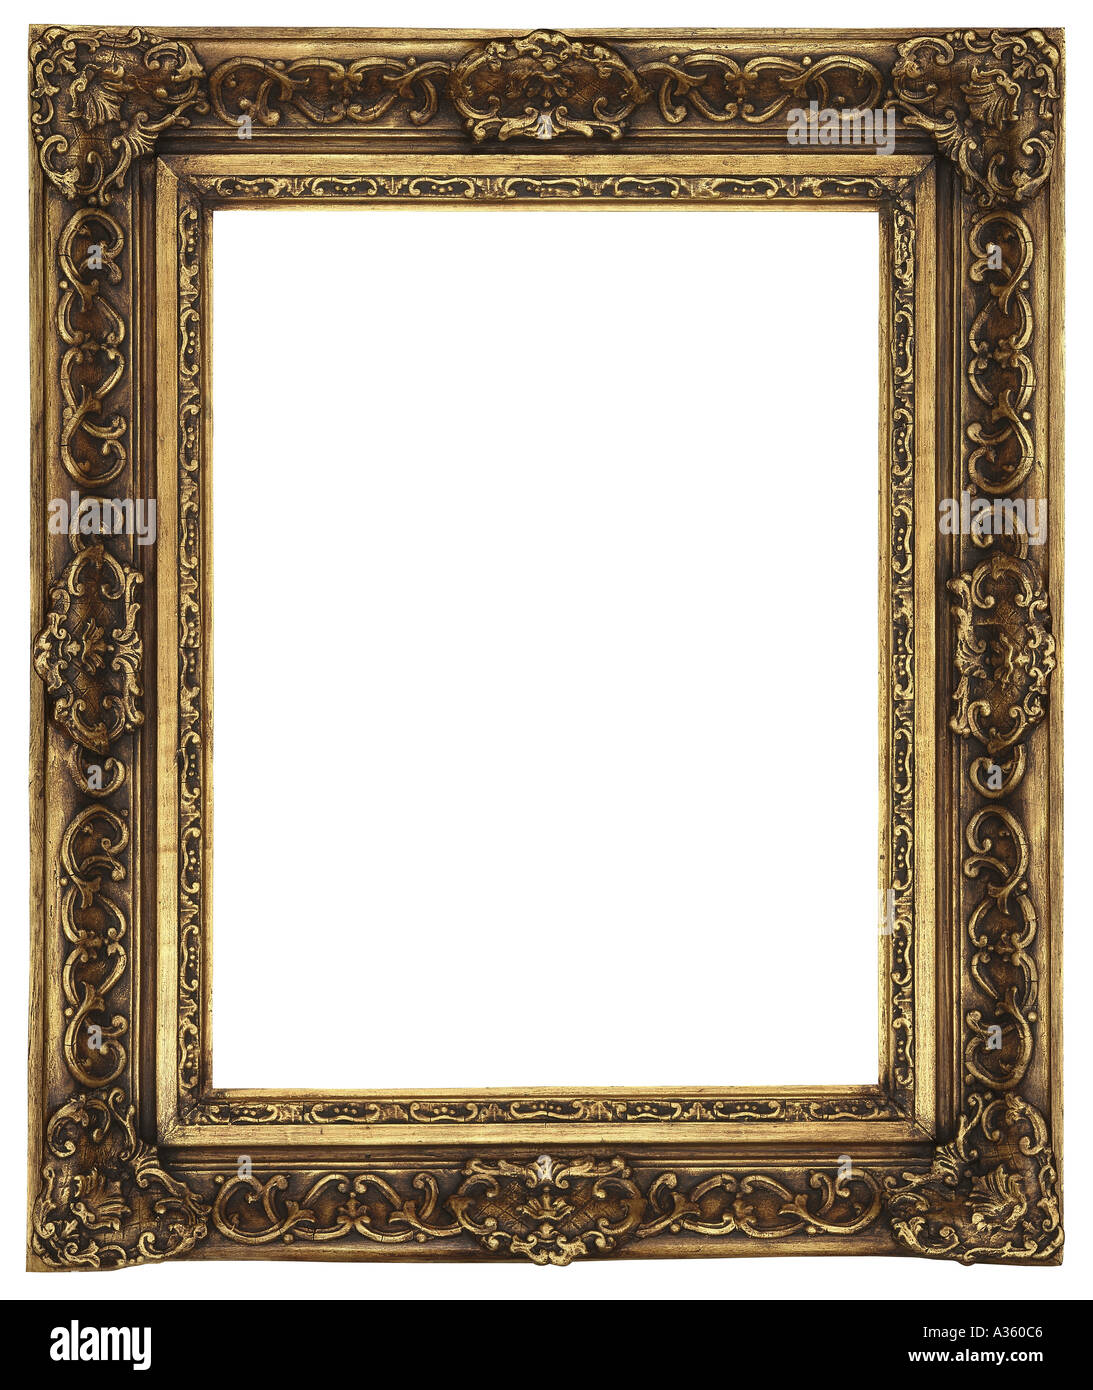 A vertical gold gilded rectangular decorative ornate antique frame ...